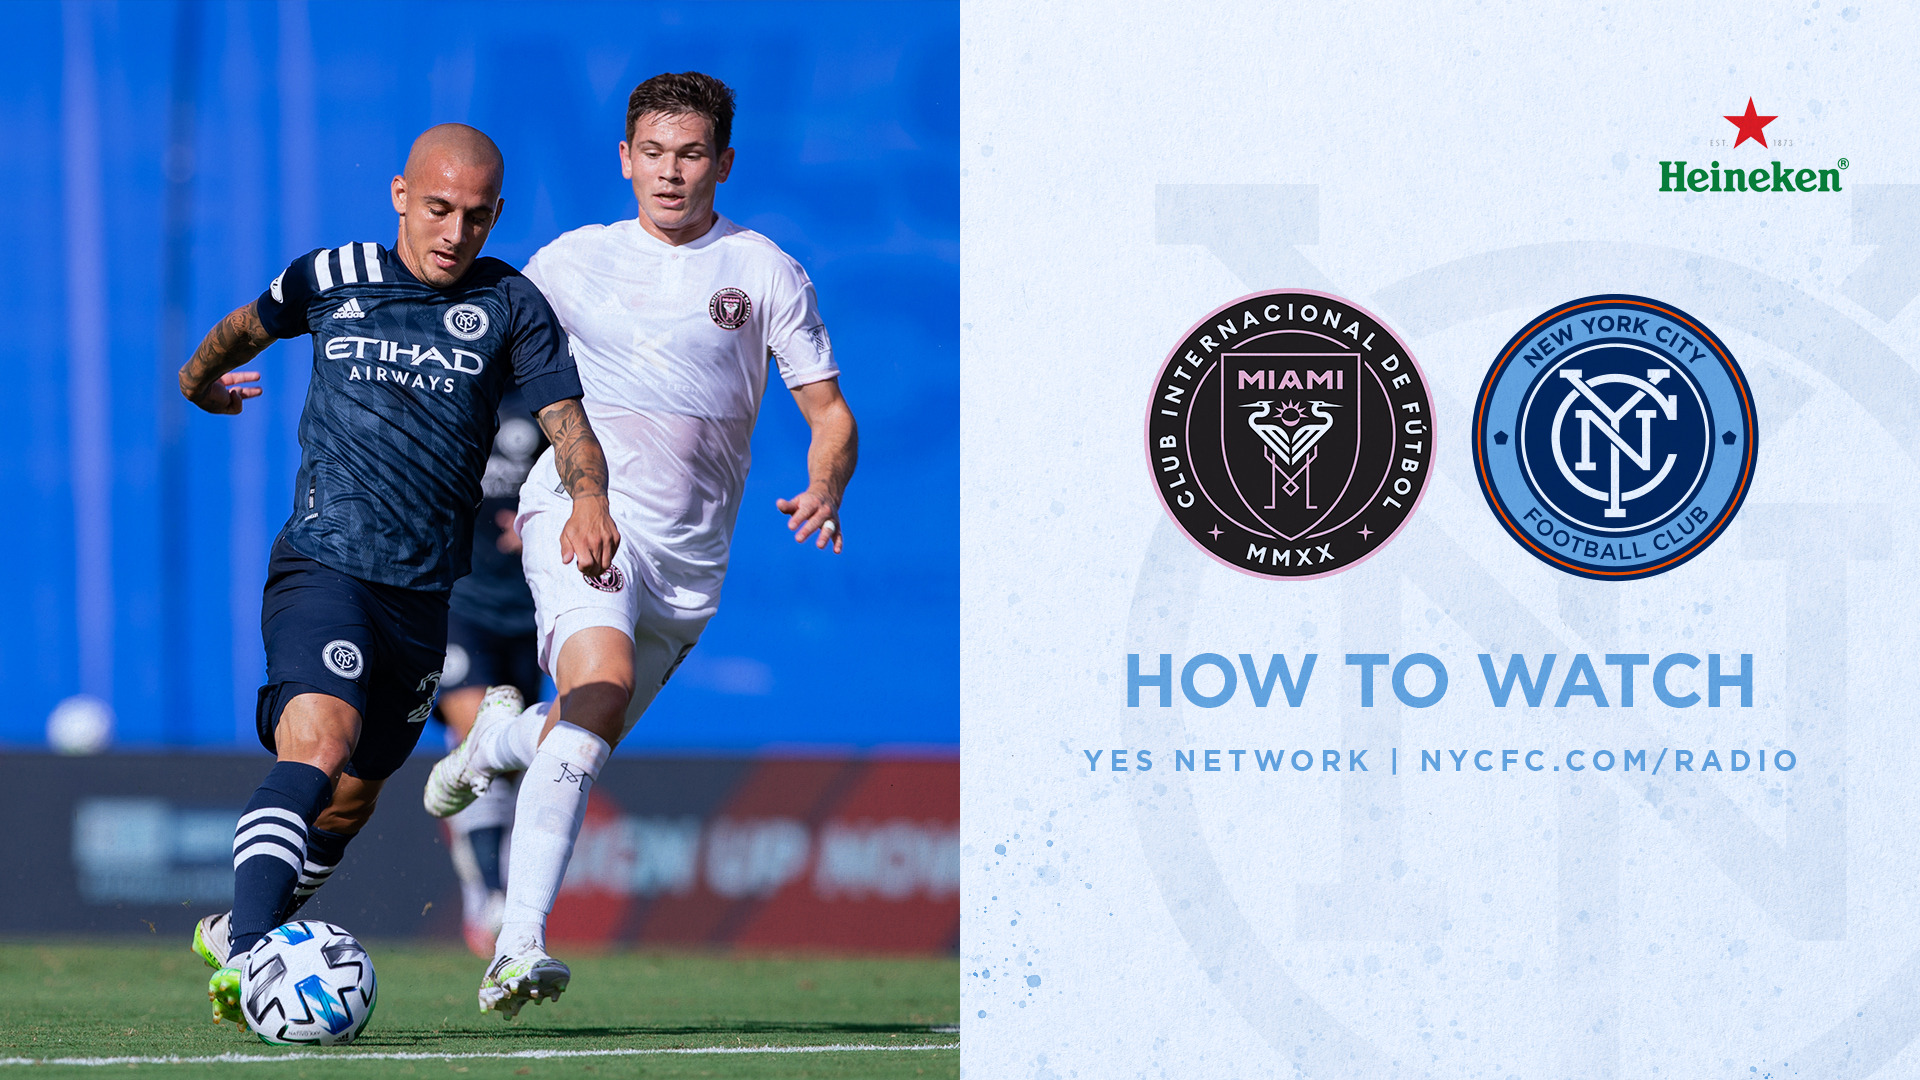 How to Watch & Listen to Inter Miami vs. NYCFC | New York City FC